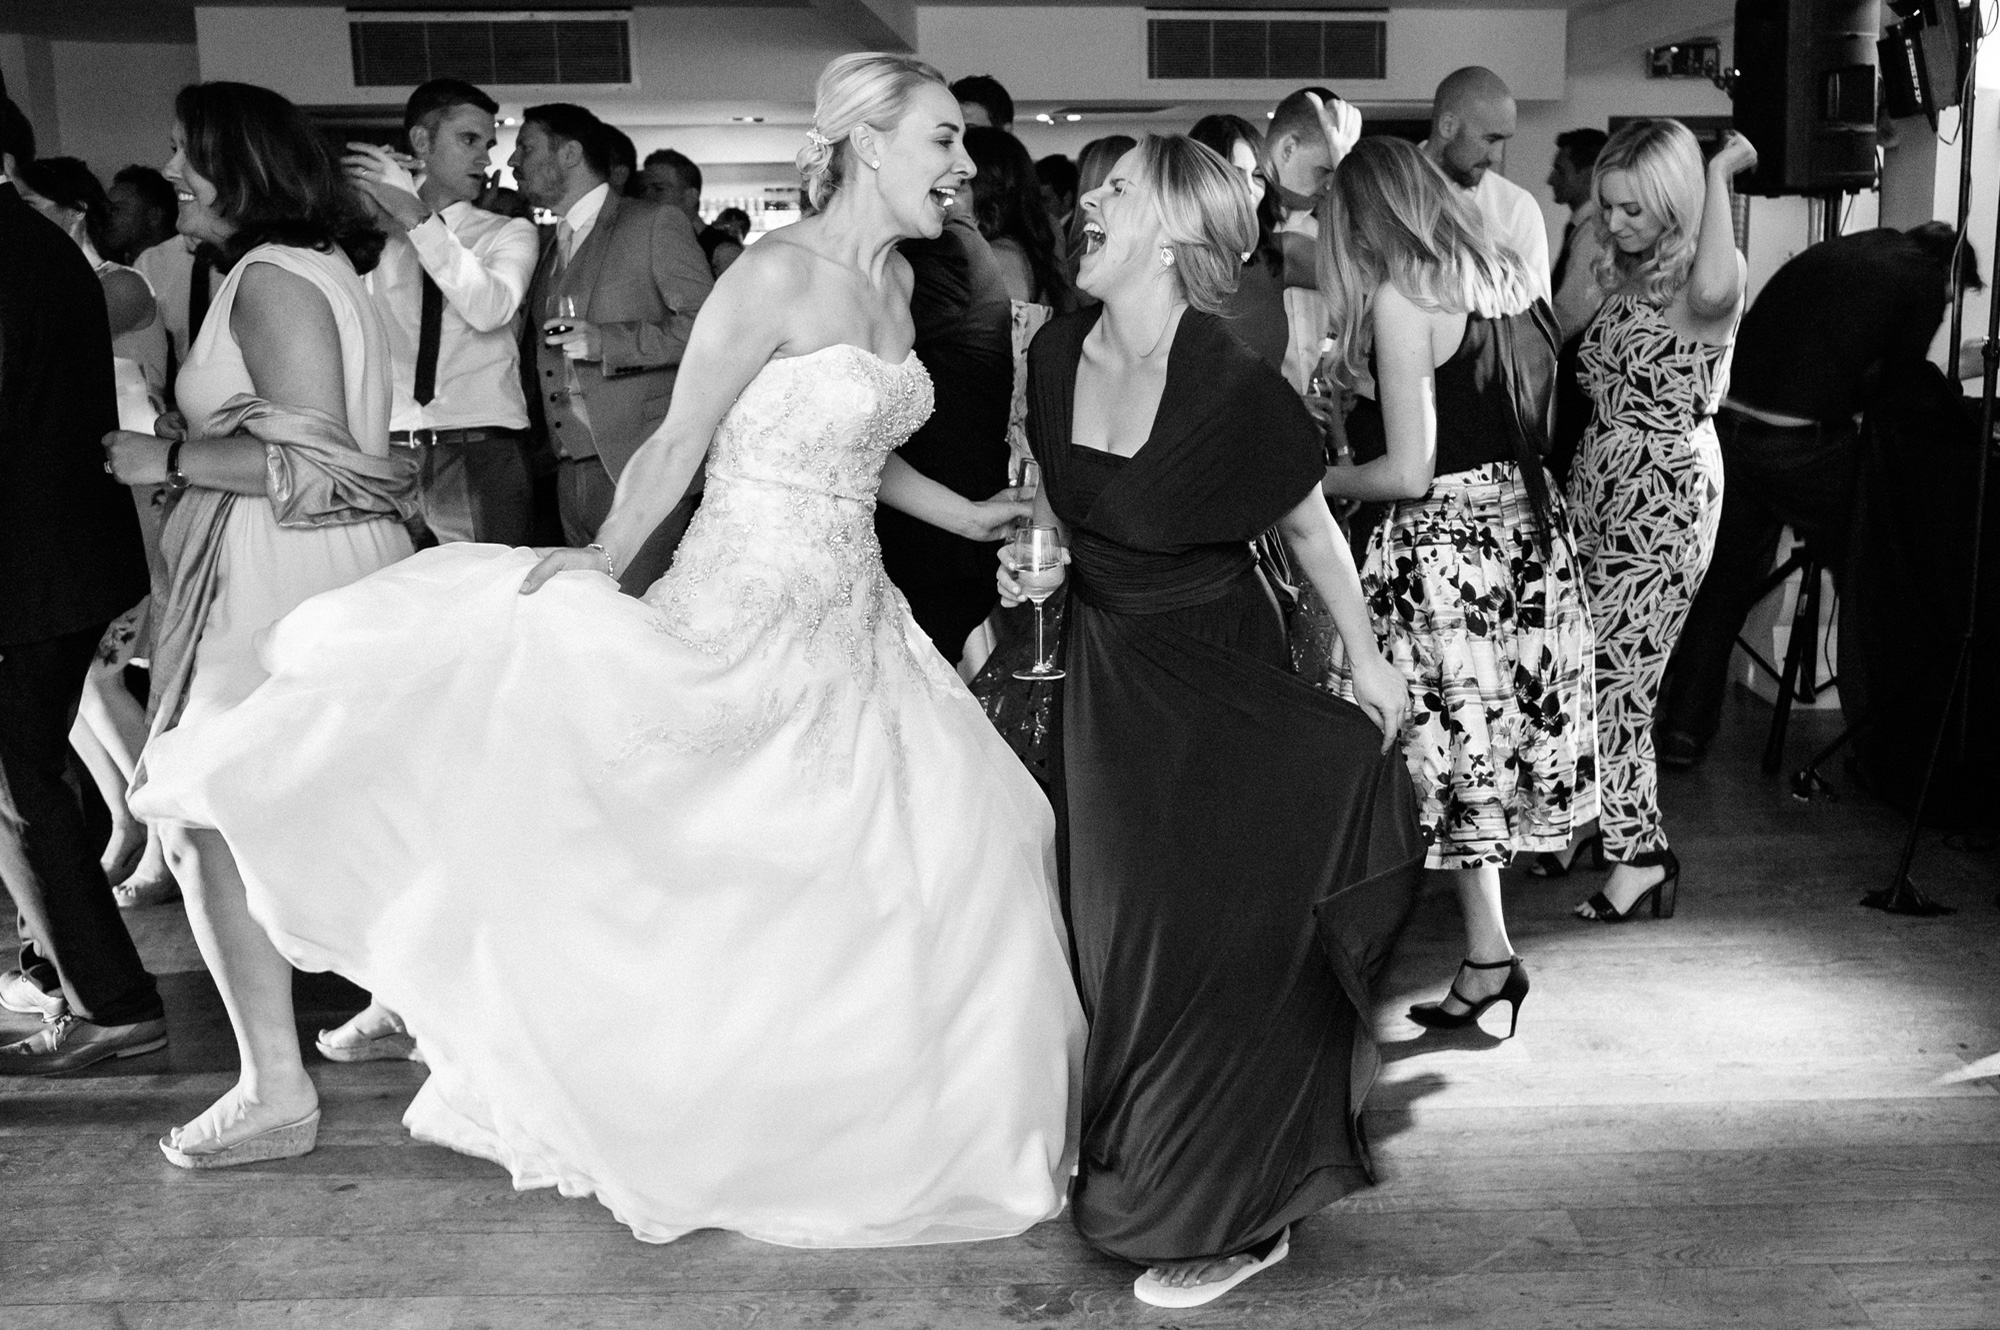 maid of honour duties ibiza wedding bride bridesmaid dancing